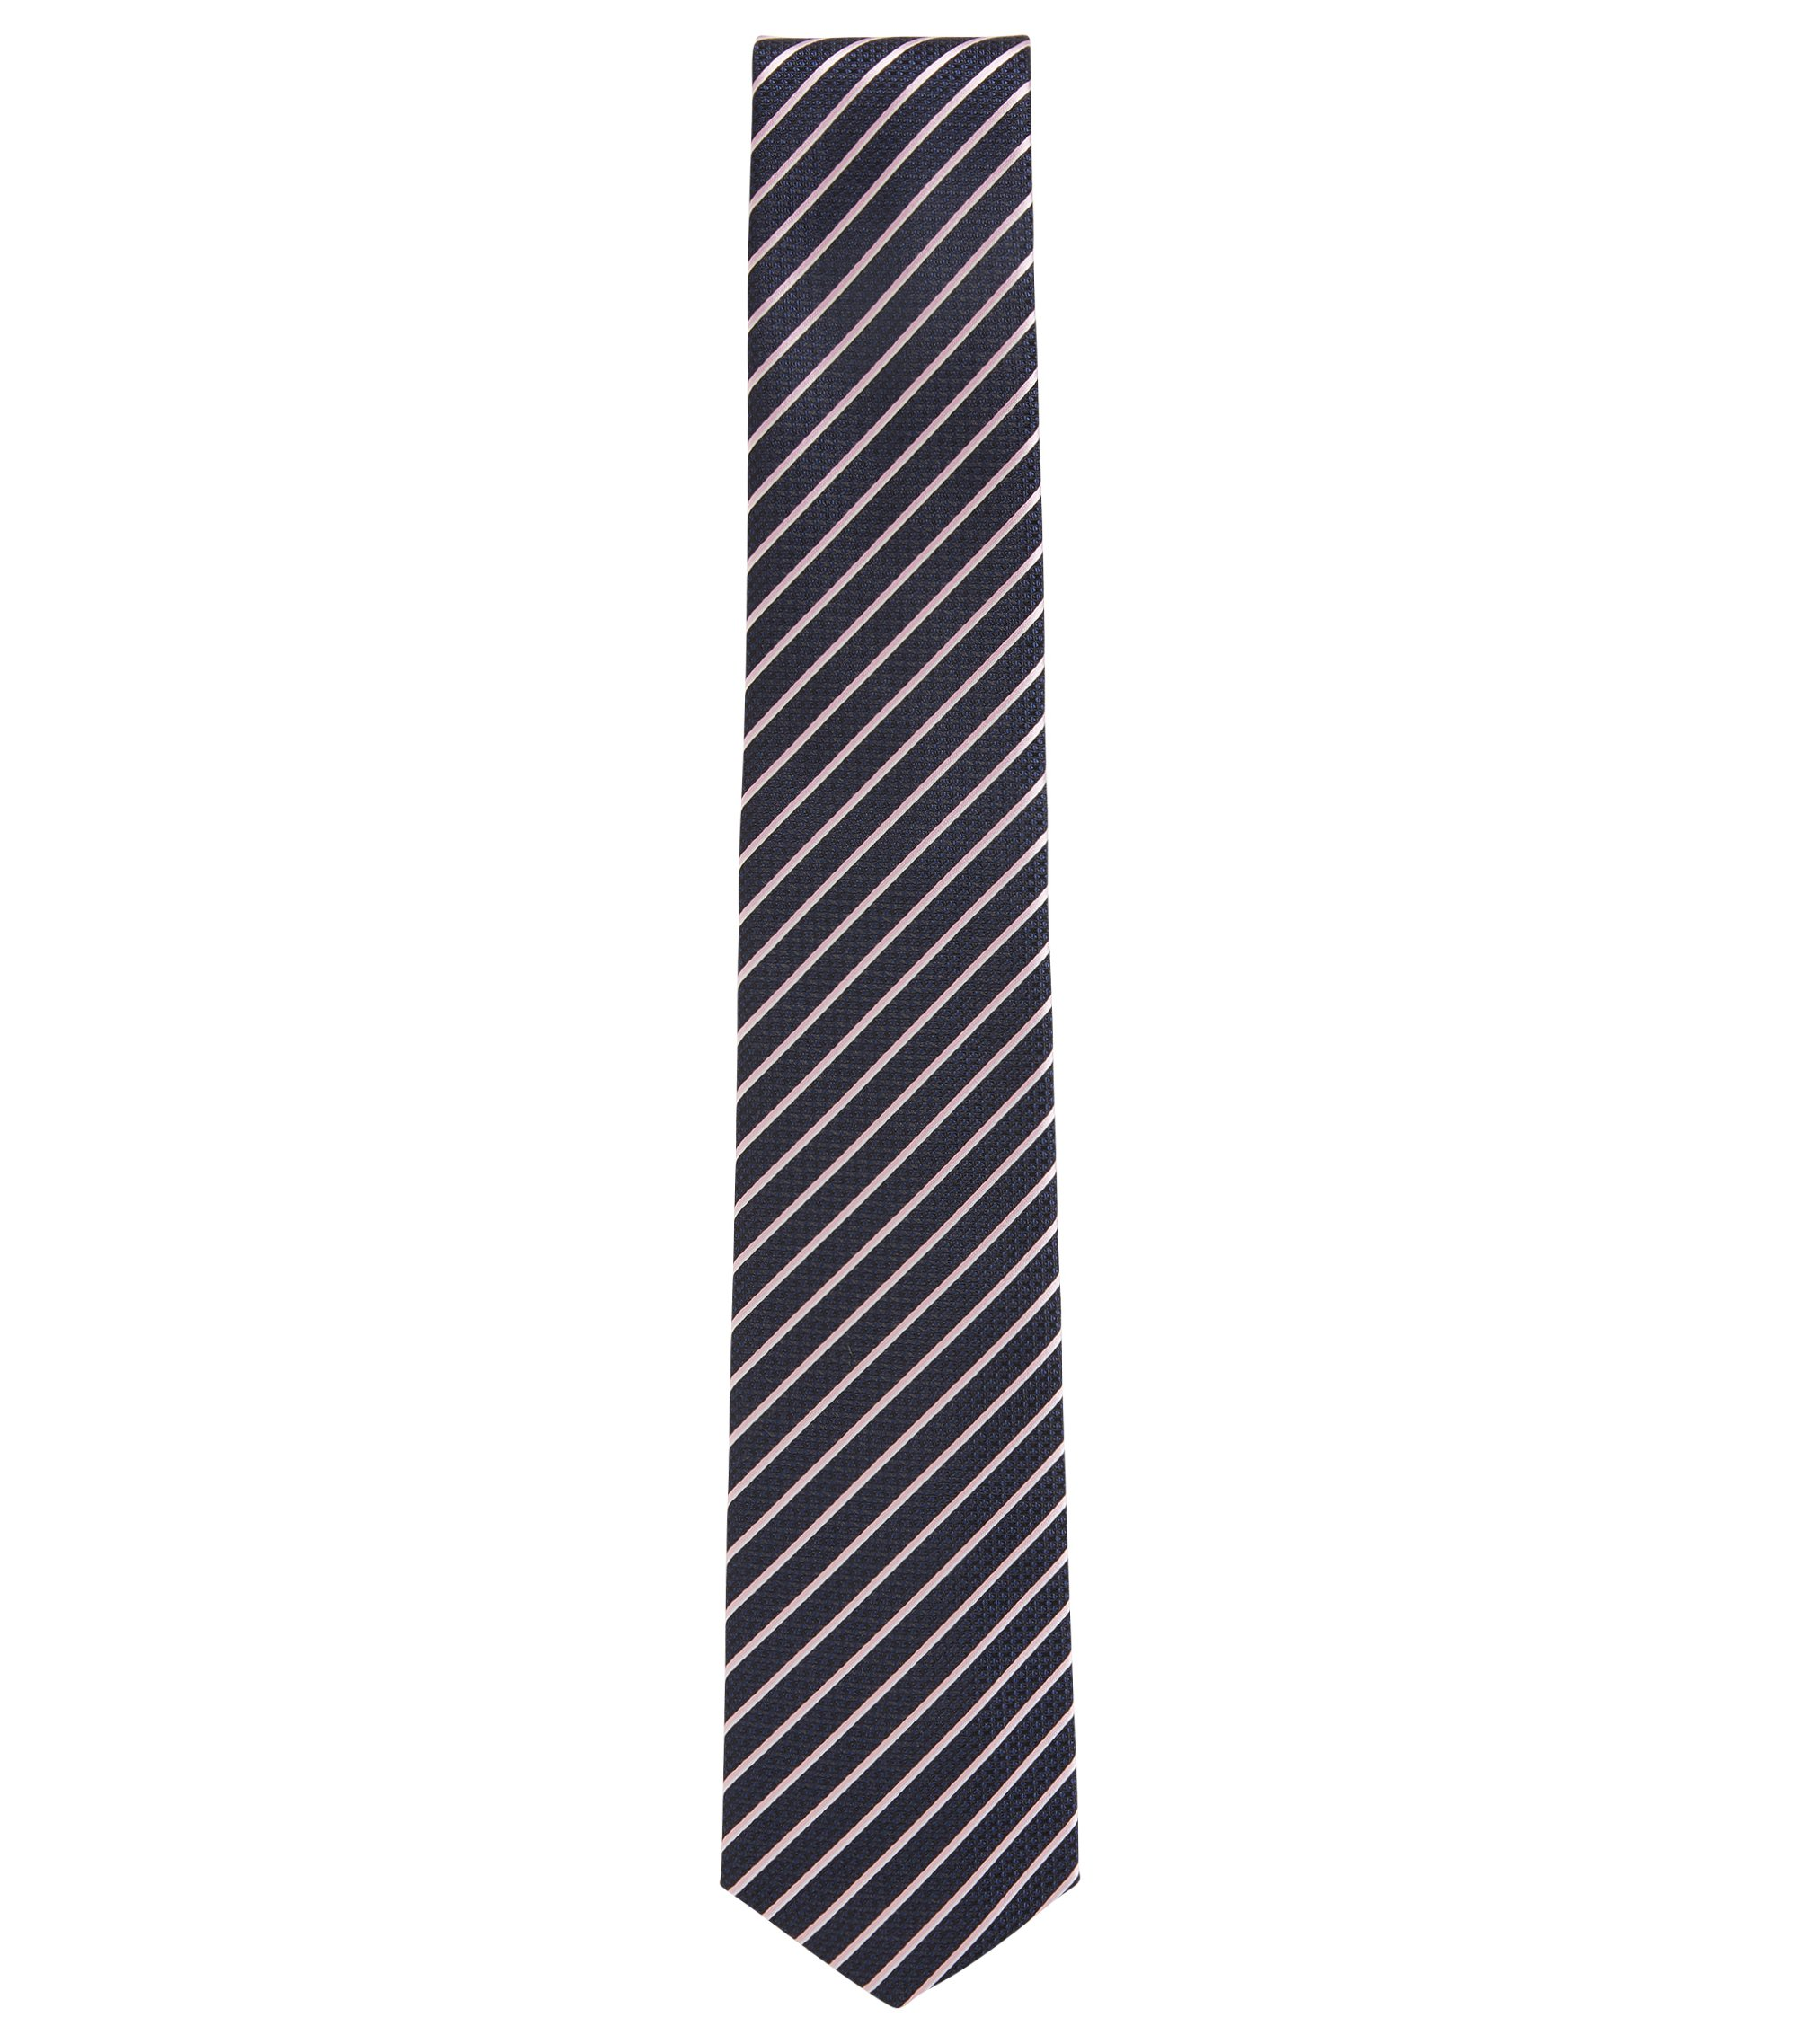 Striped Italian Silk Tie, light pink